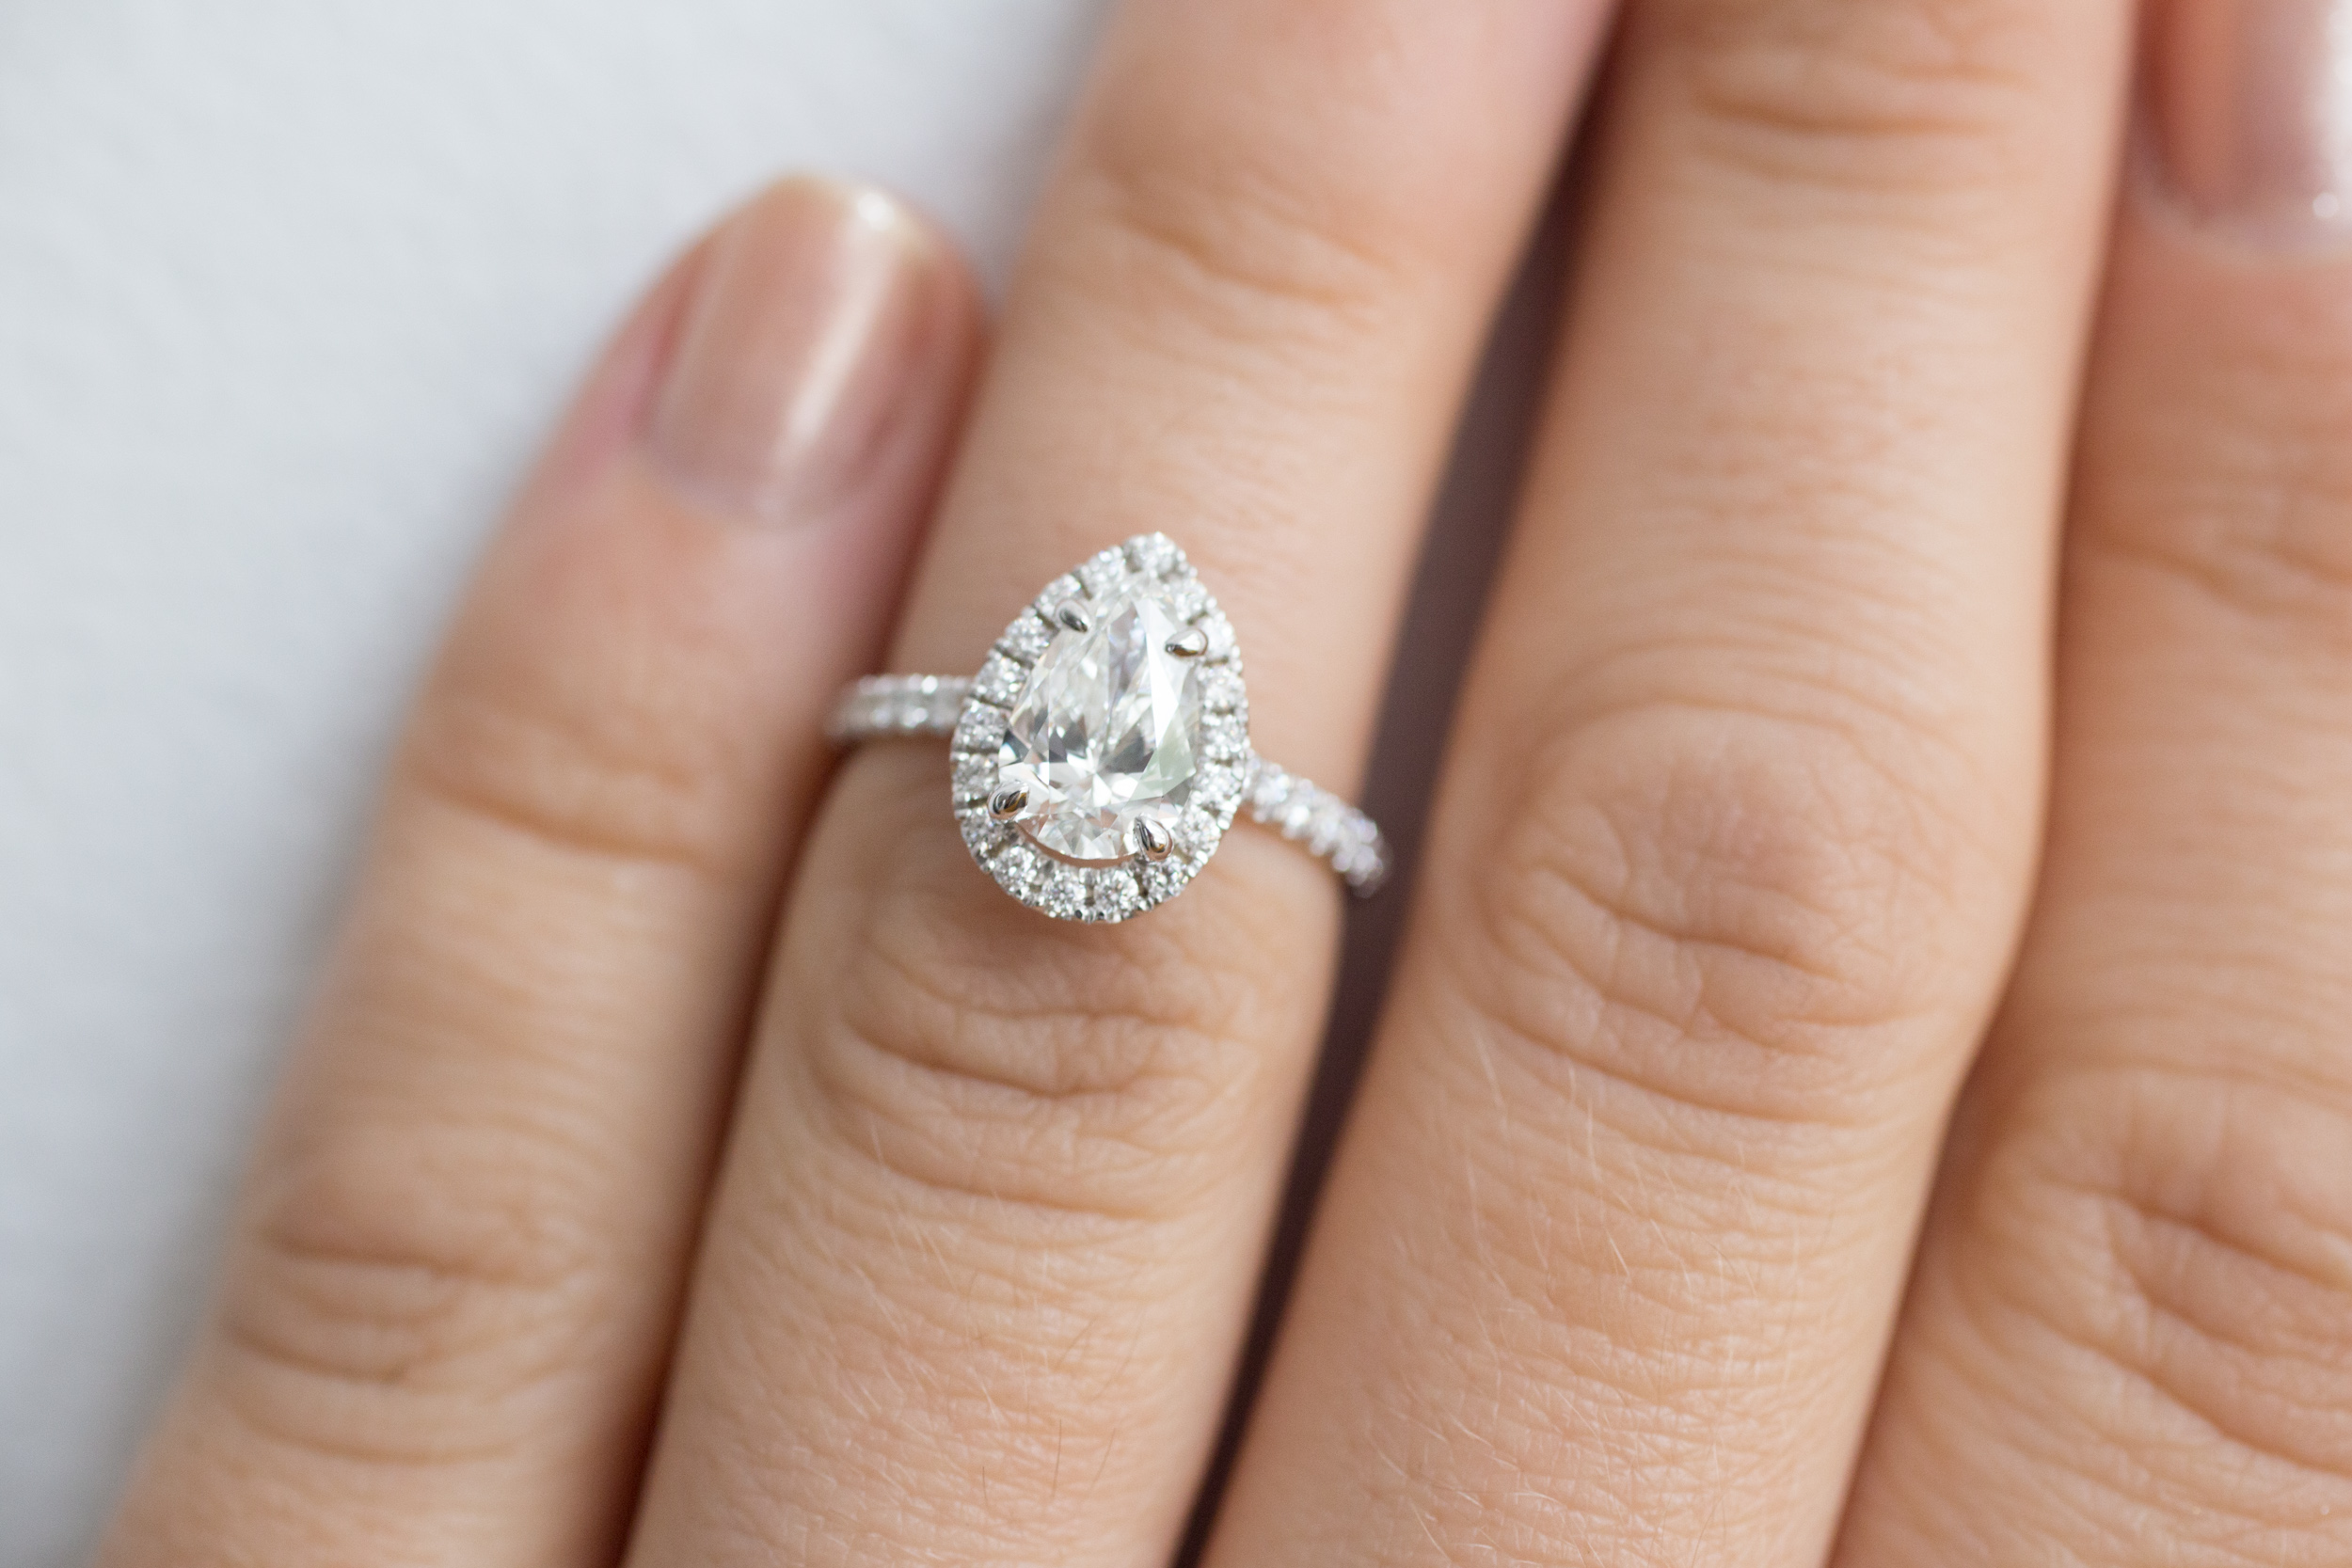 Charlie + Abi 1.2 ctw Pear Diamond Halo Engagement -24.jpg